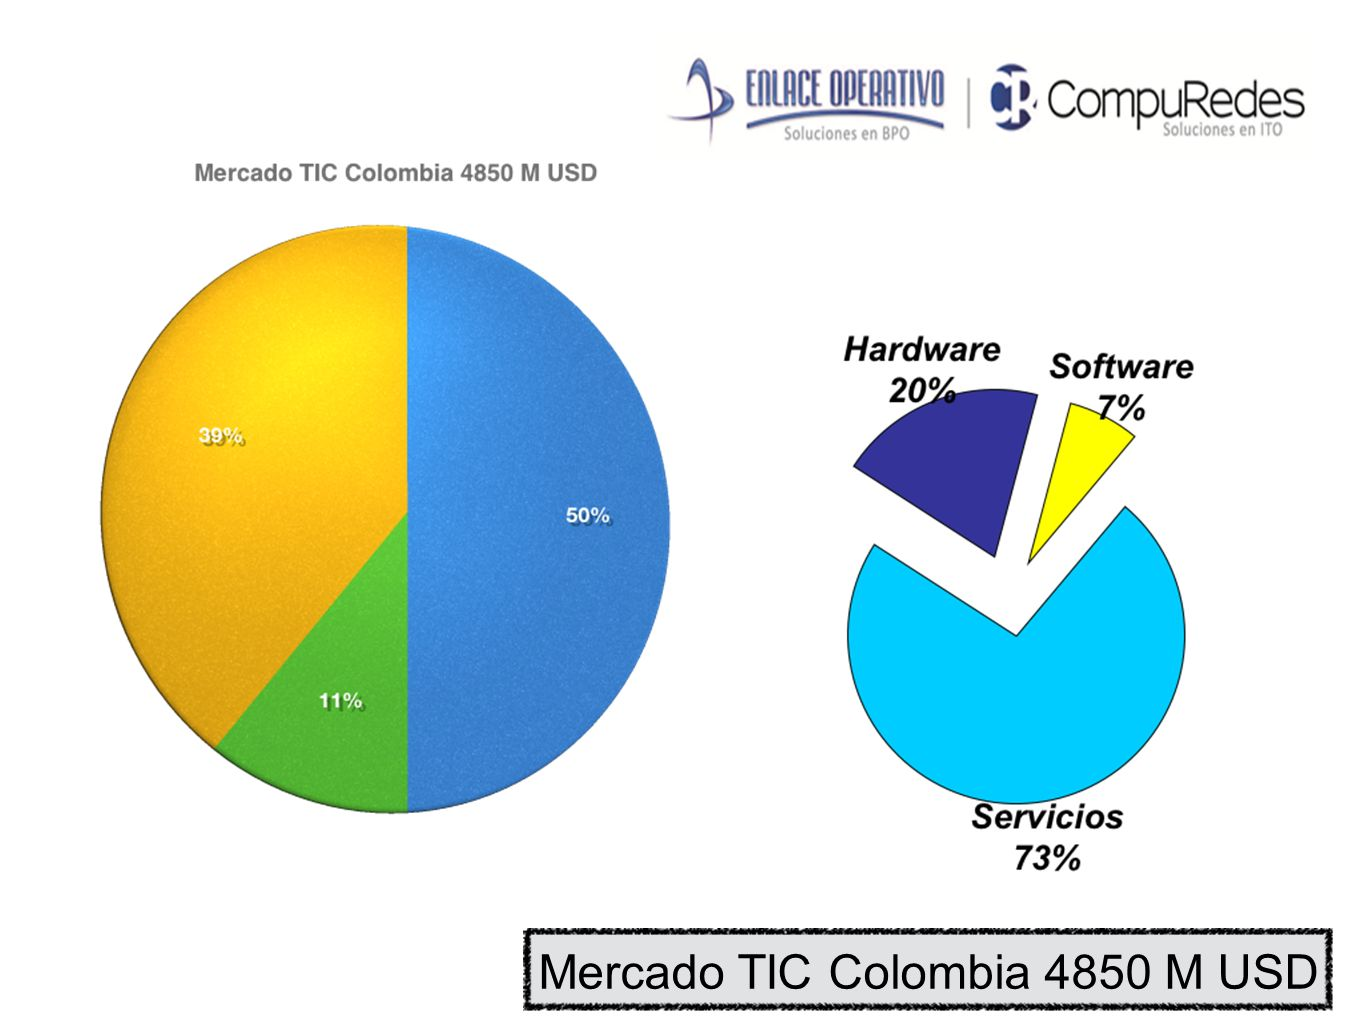 Mercado TIC Colombia 4850 M USD